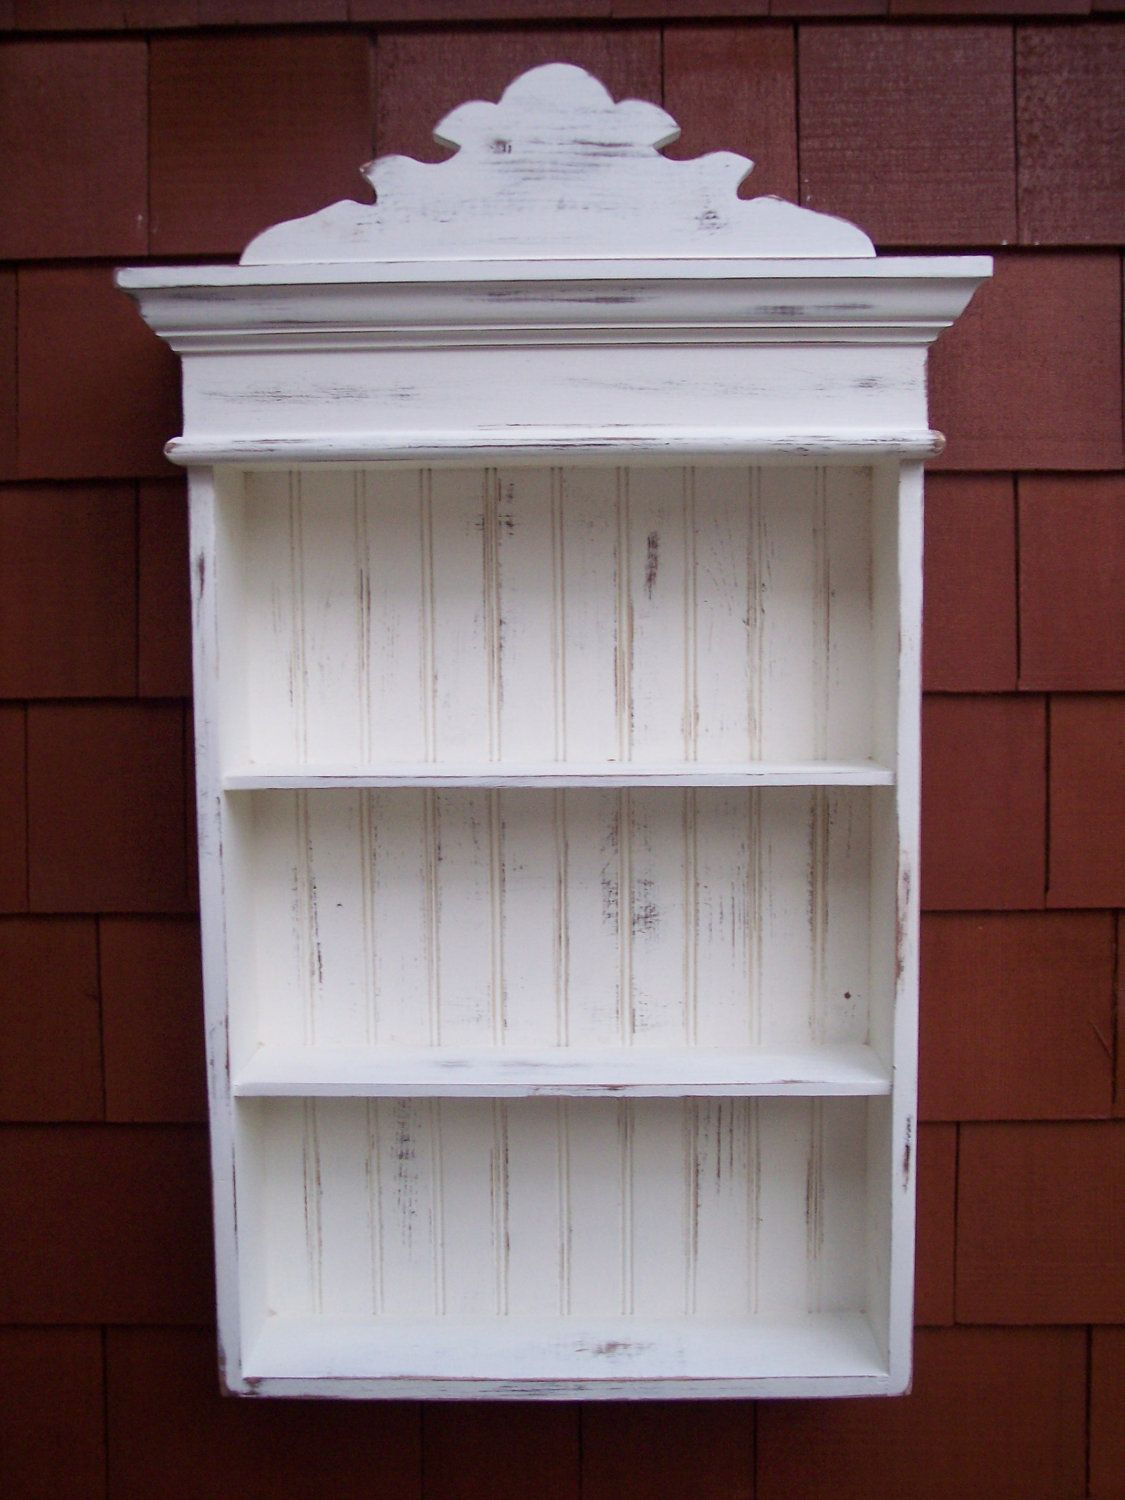 Distressed White Cabinet Bathroom Cabinet Kitchen Cabinet Chic Bathrooms Bathroom Wall Cabinets Shabby Chic Kitchen